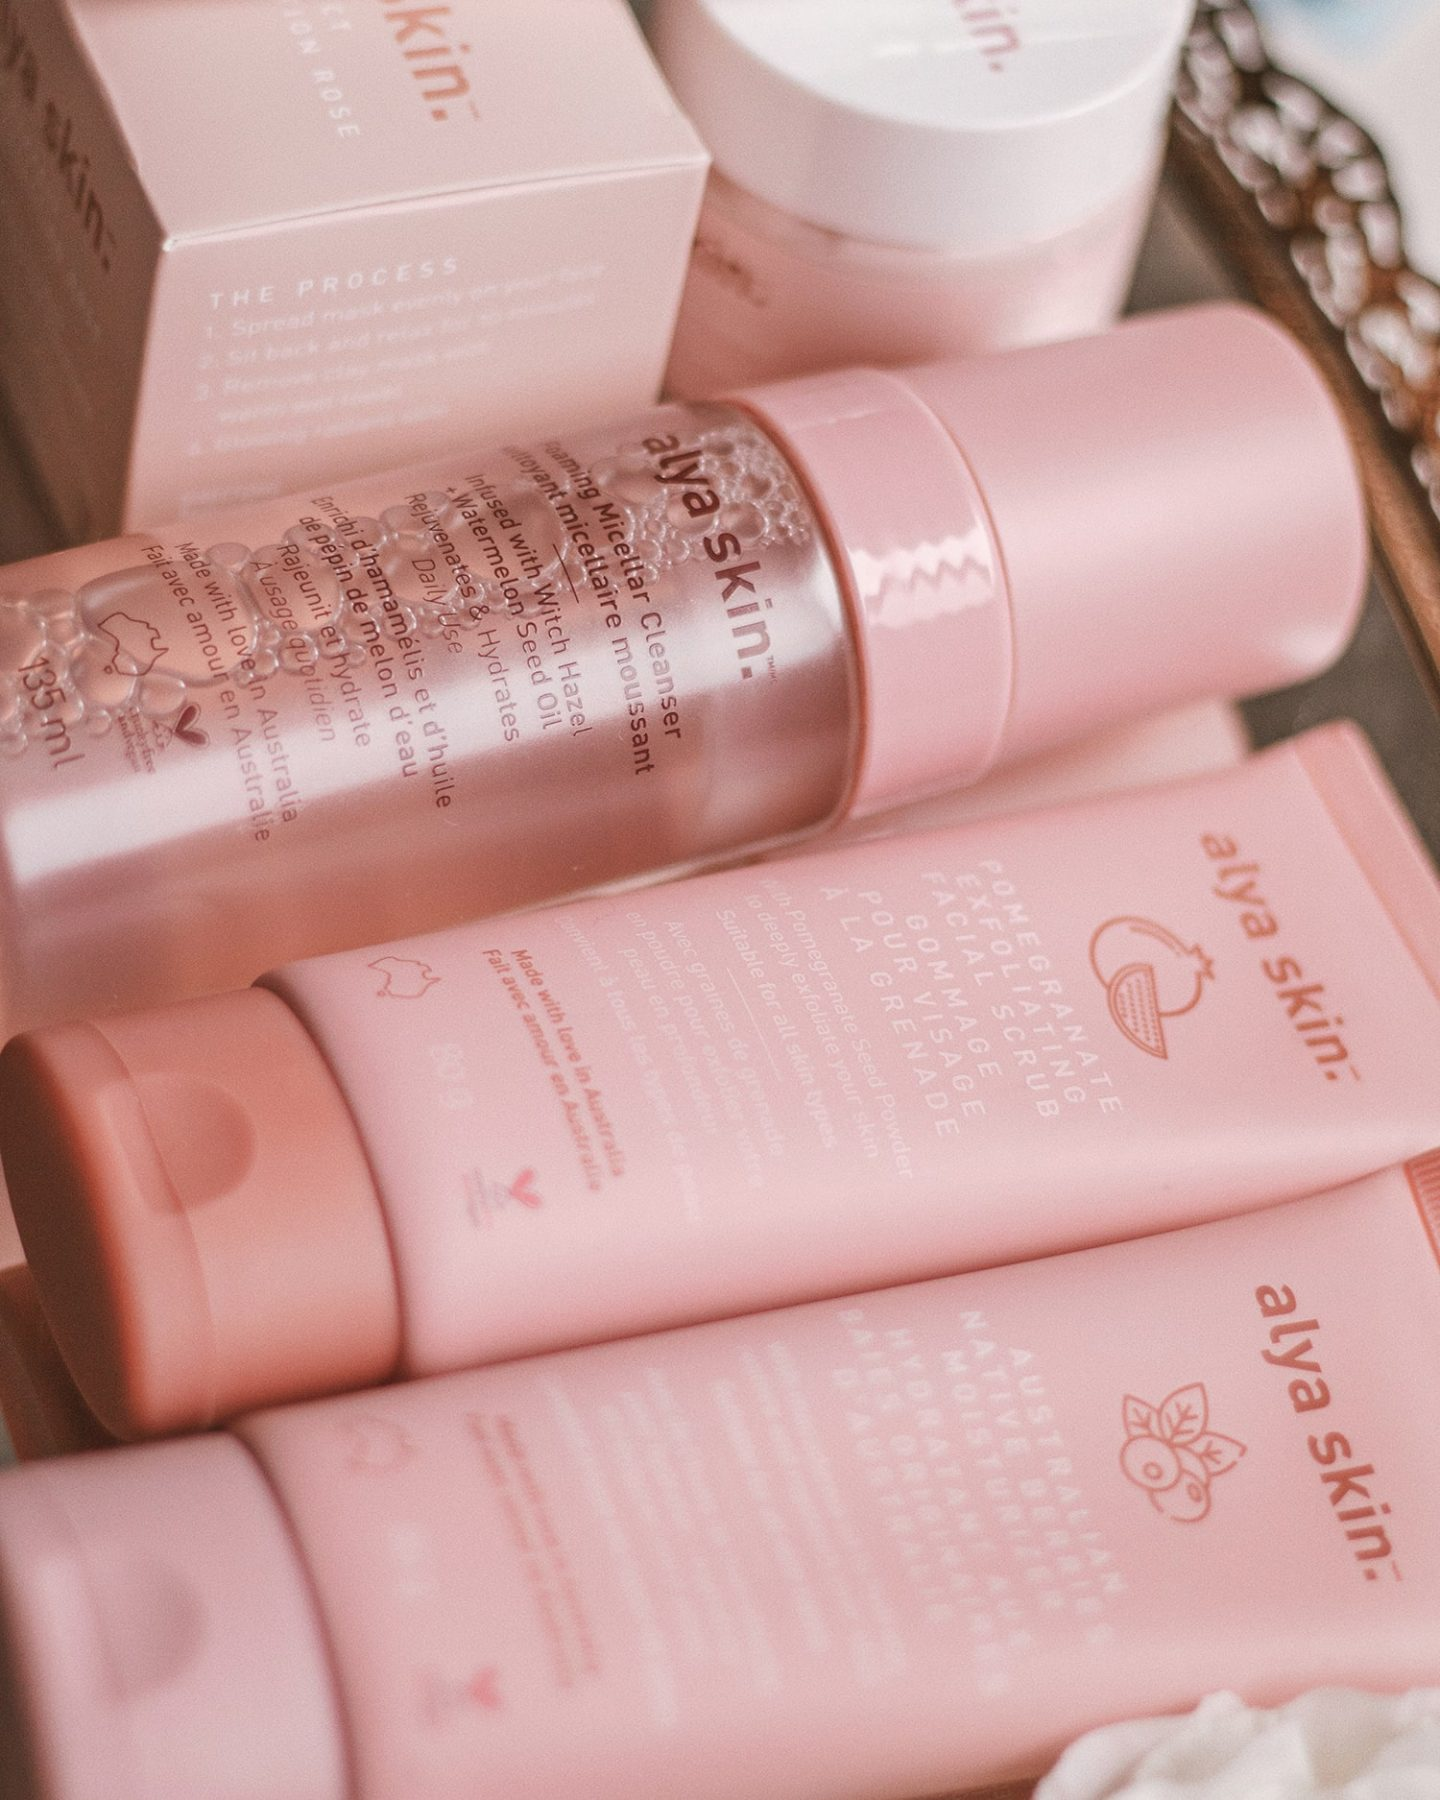 Ayla skin products review by beauty blogger Nicole Rae